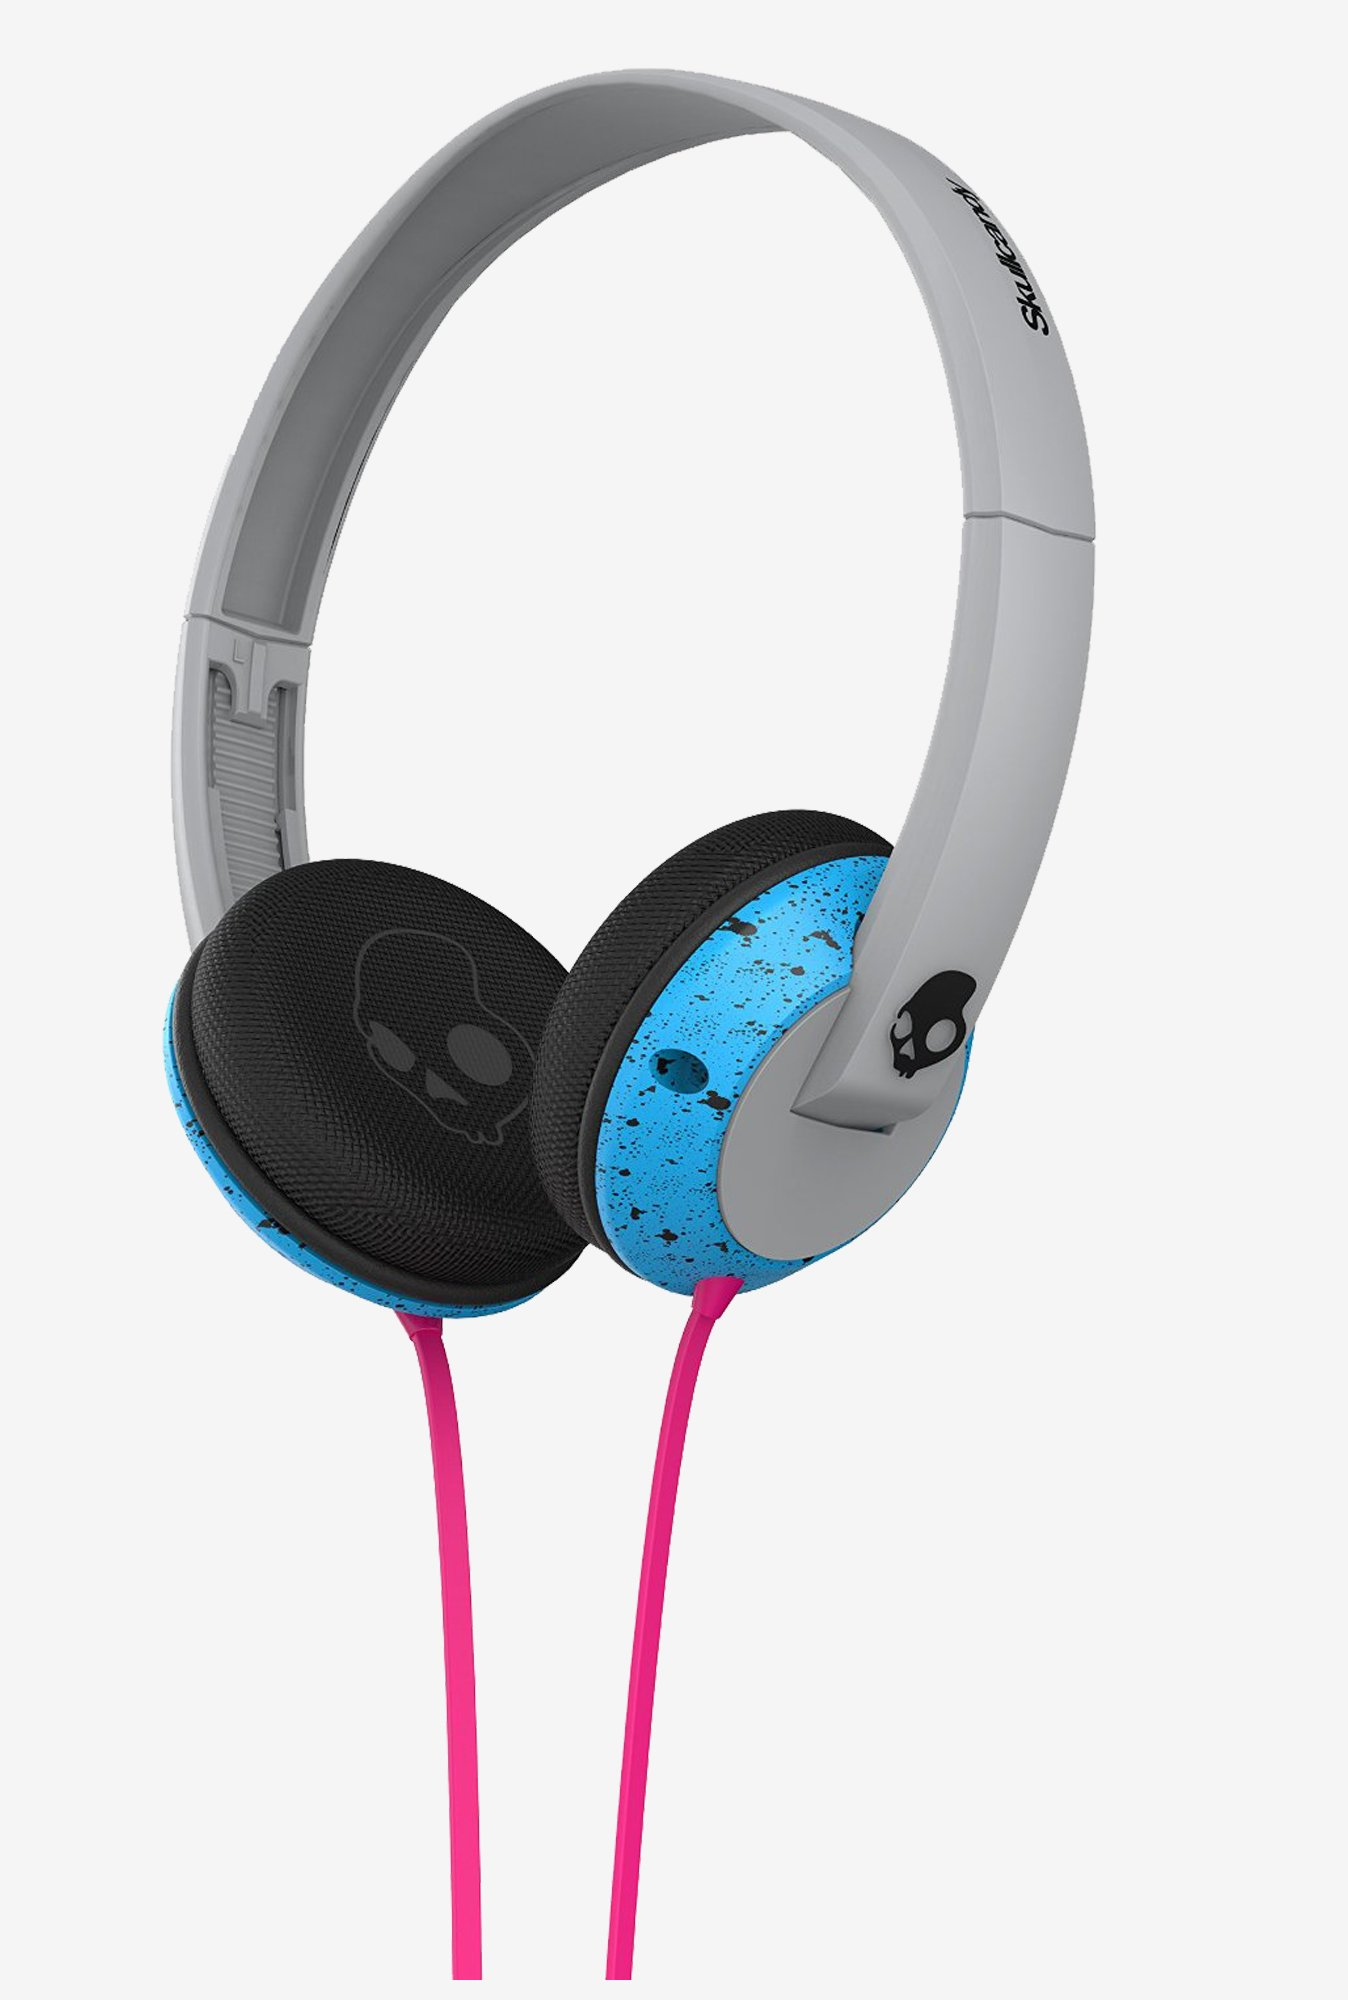 Skullcandy S5URGY-381 On the Ear Headphone (Grey)